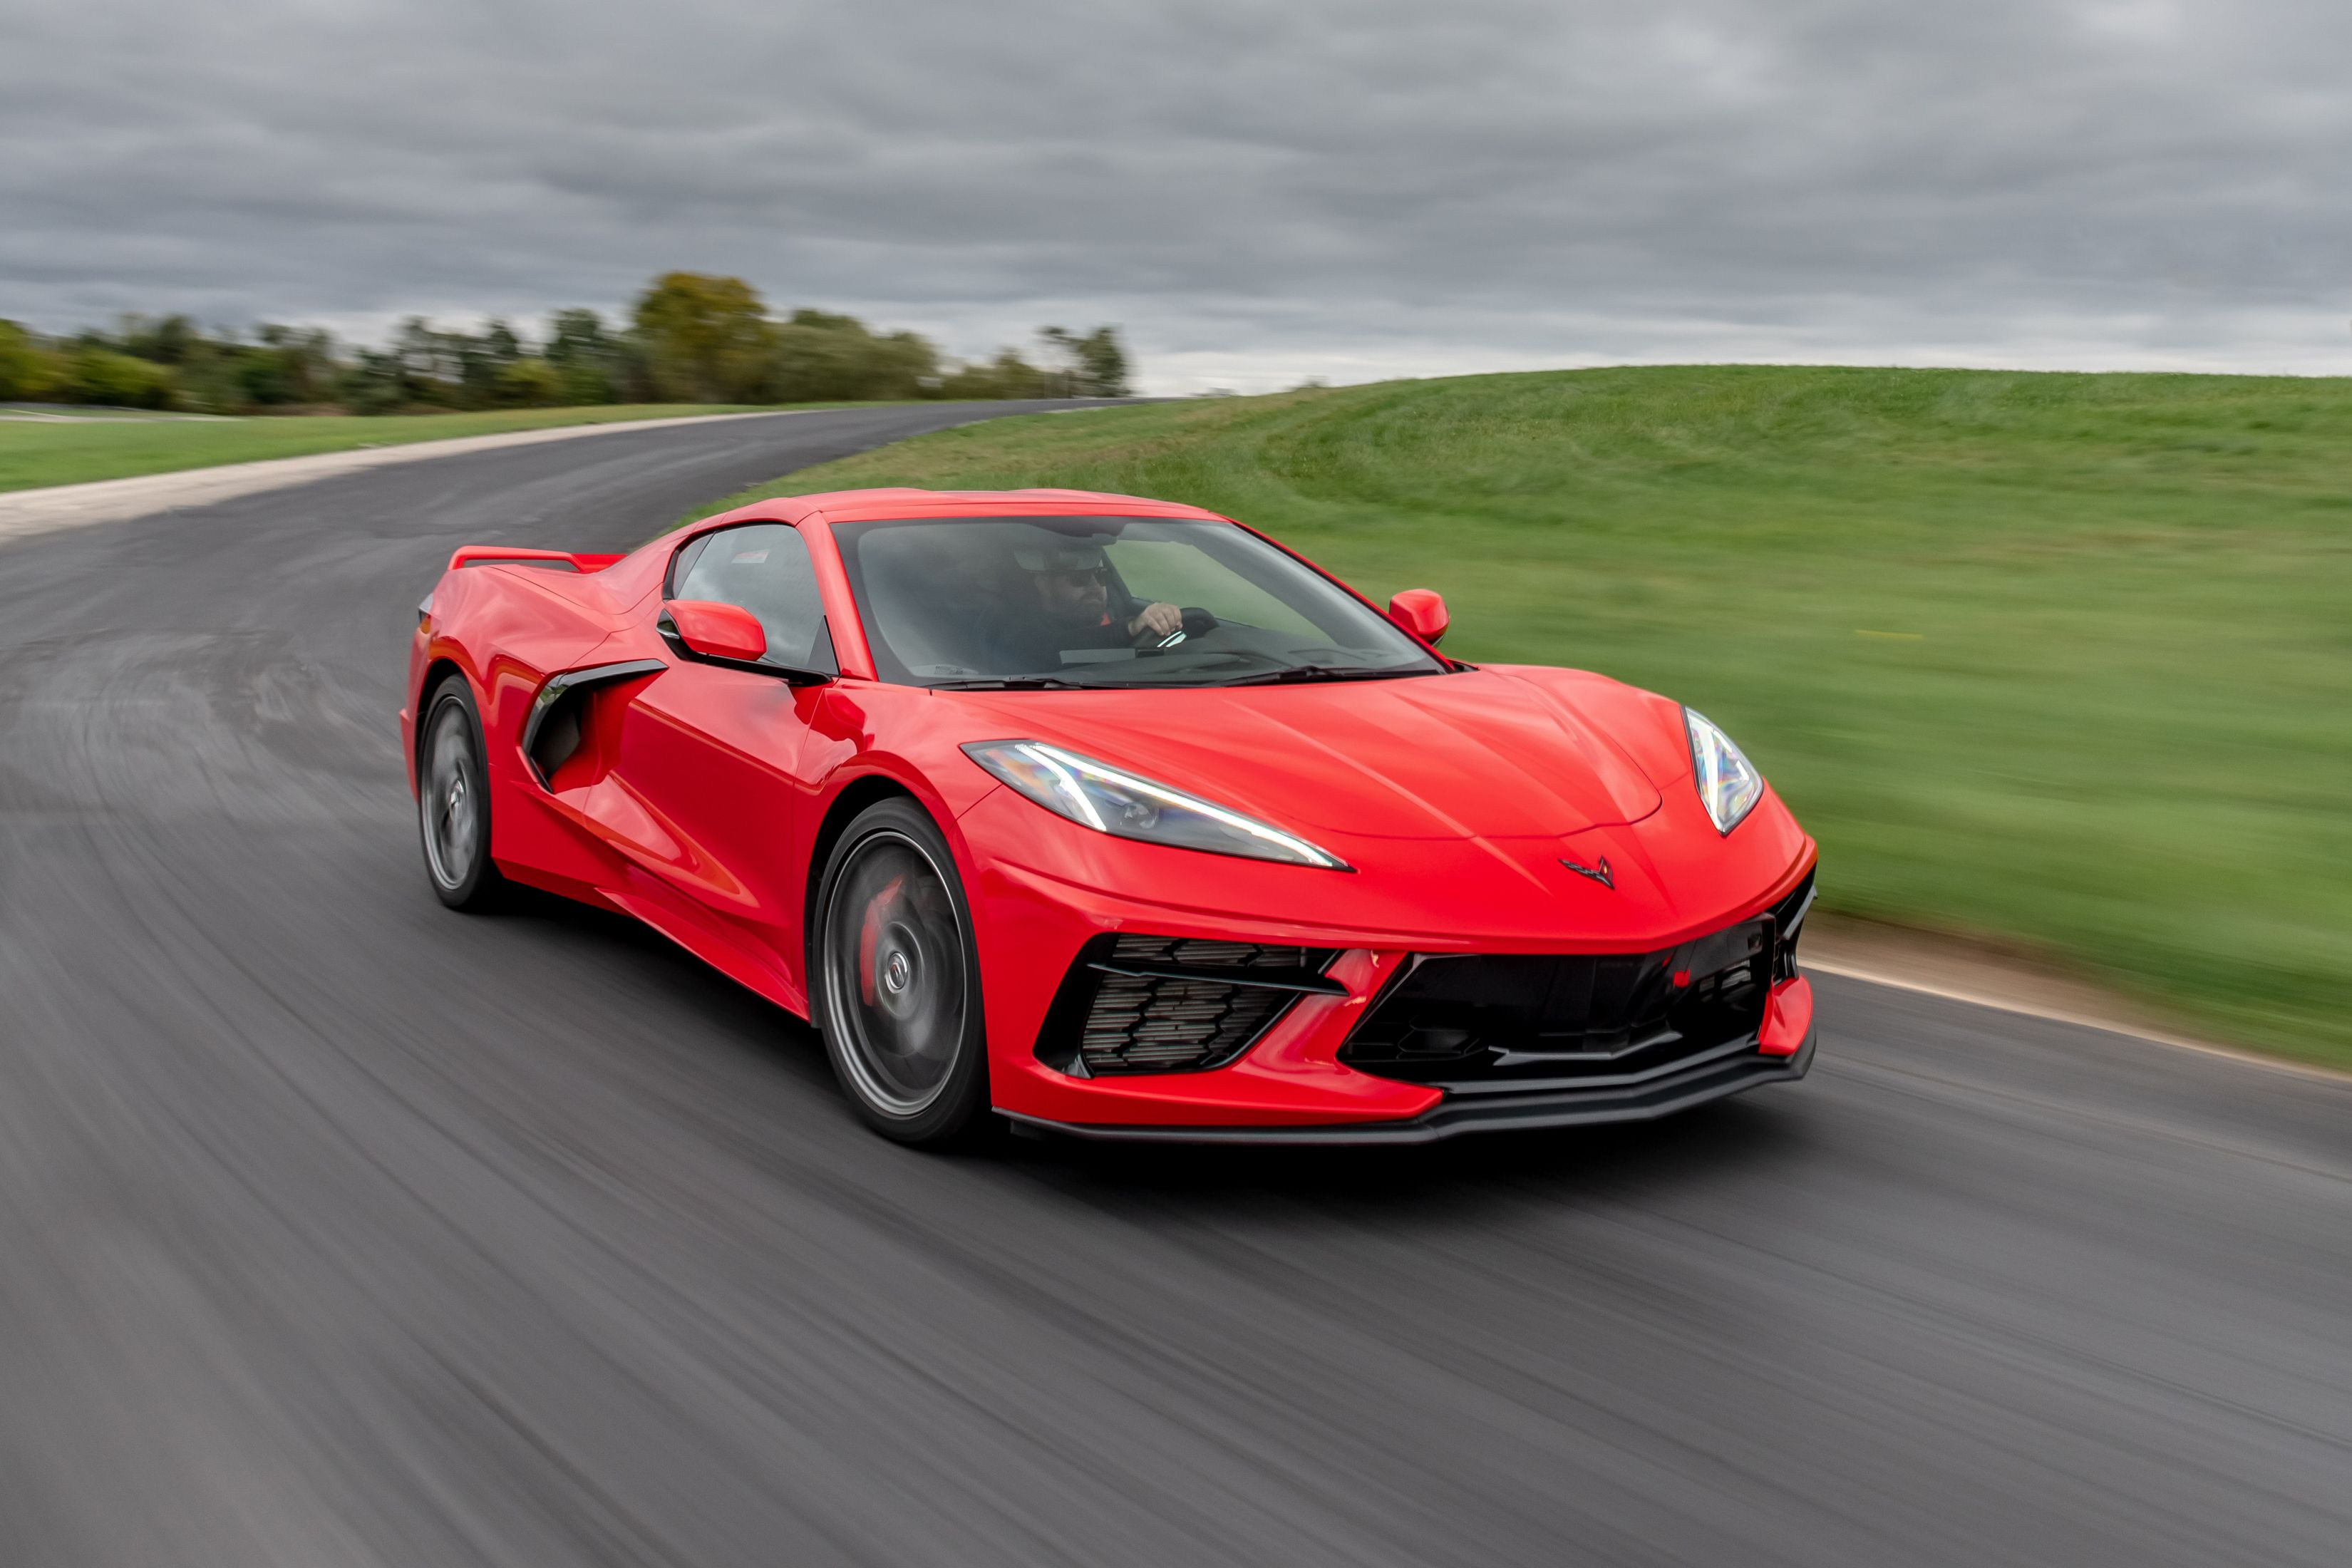 The NACTOY team has held a special event in Detroit to announce the most loved passenger car on the North American continent in 2019. The prize went to the 8th-gen Chevrolet Corvette.